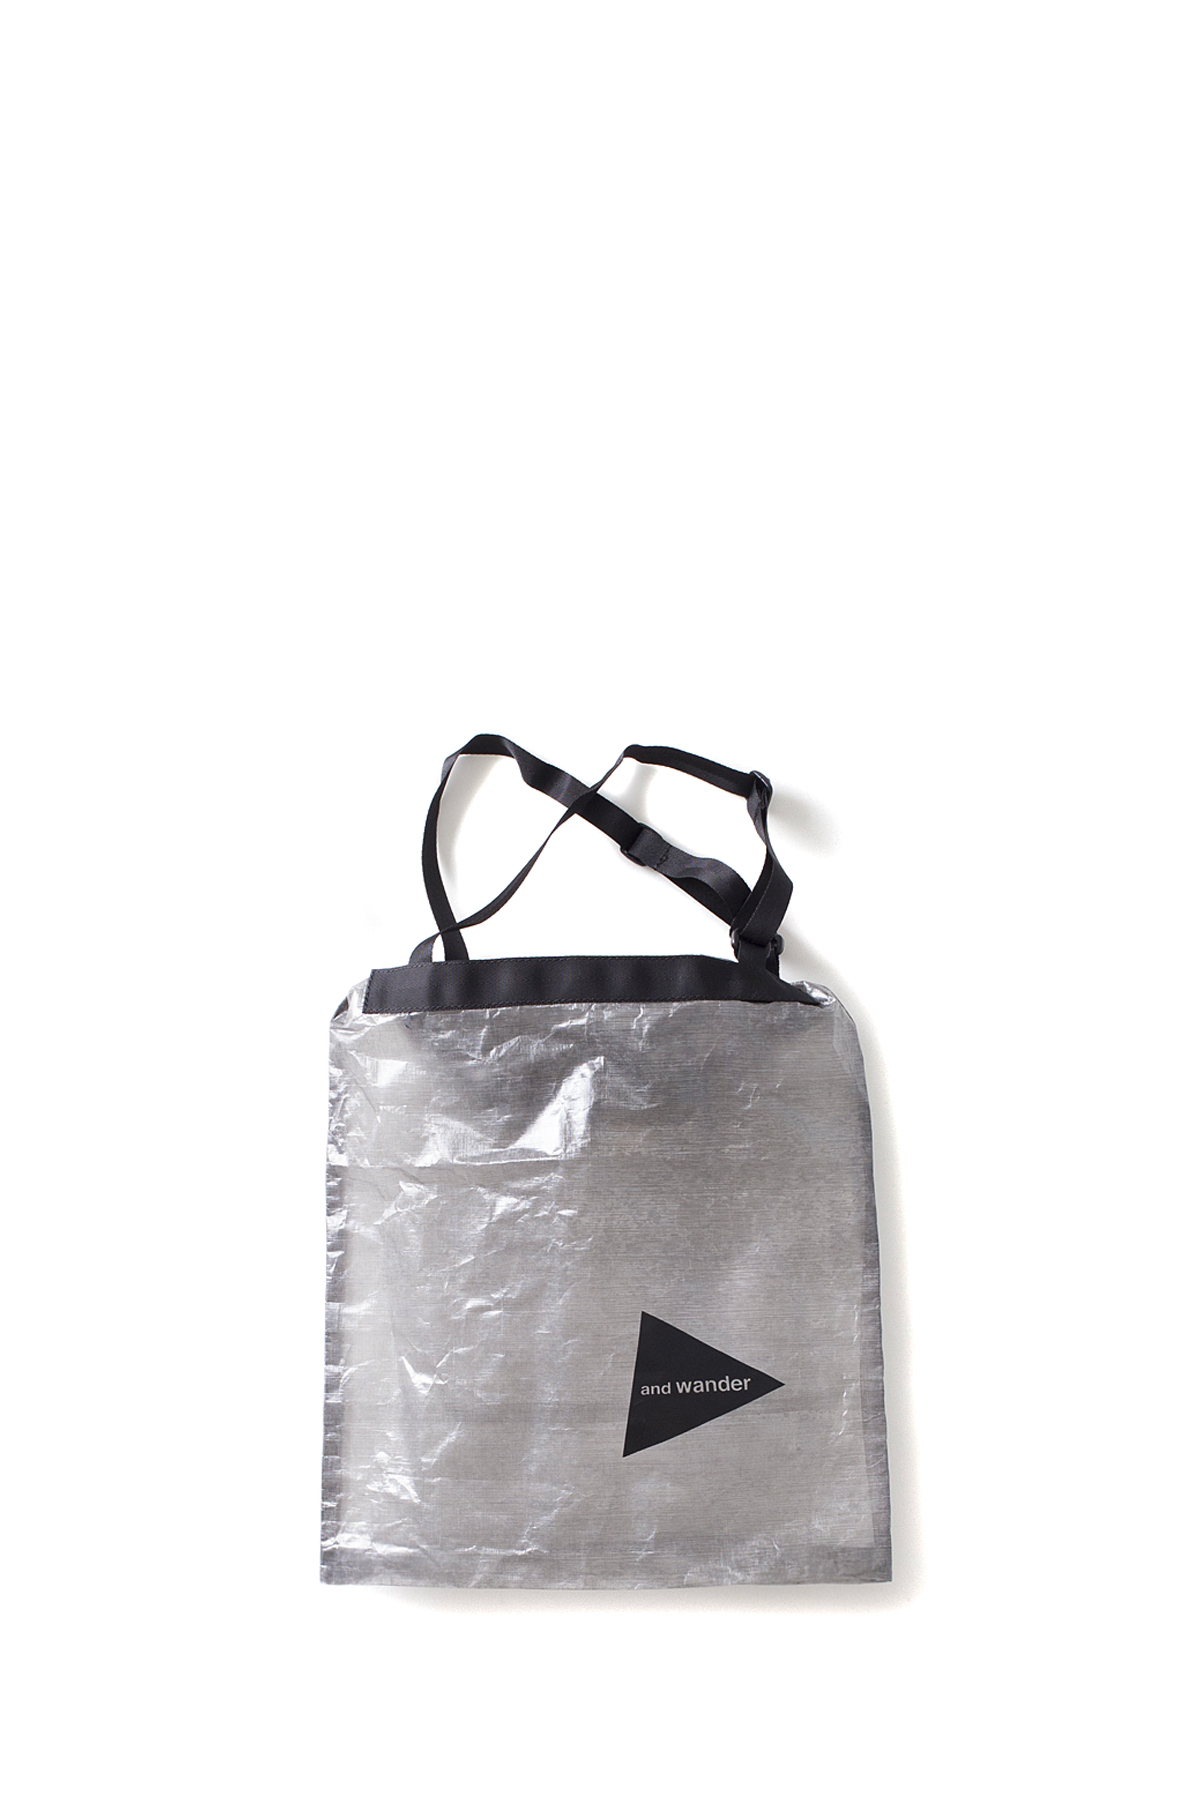 and wander : Cuben Fiber Stuffsack (Black)